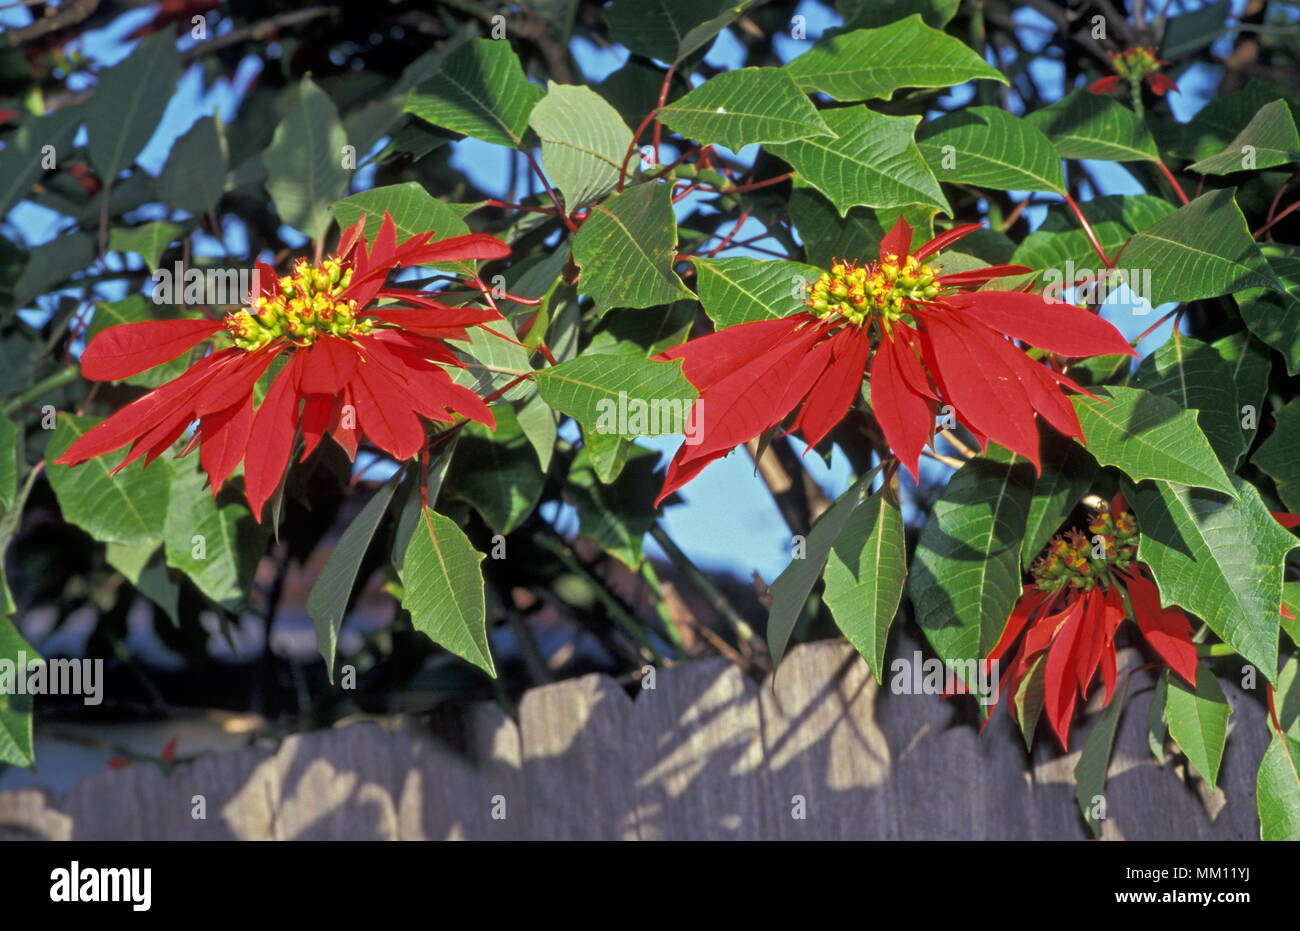 Poinsettia Tree High Resolution Stock Photography And Images Alamy